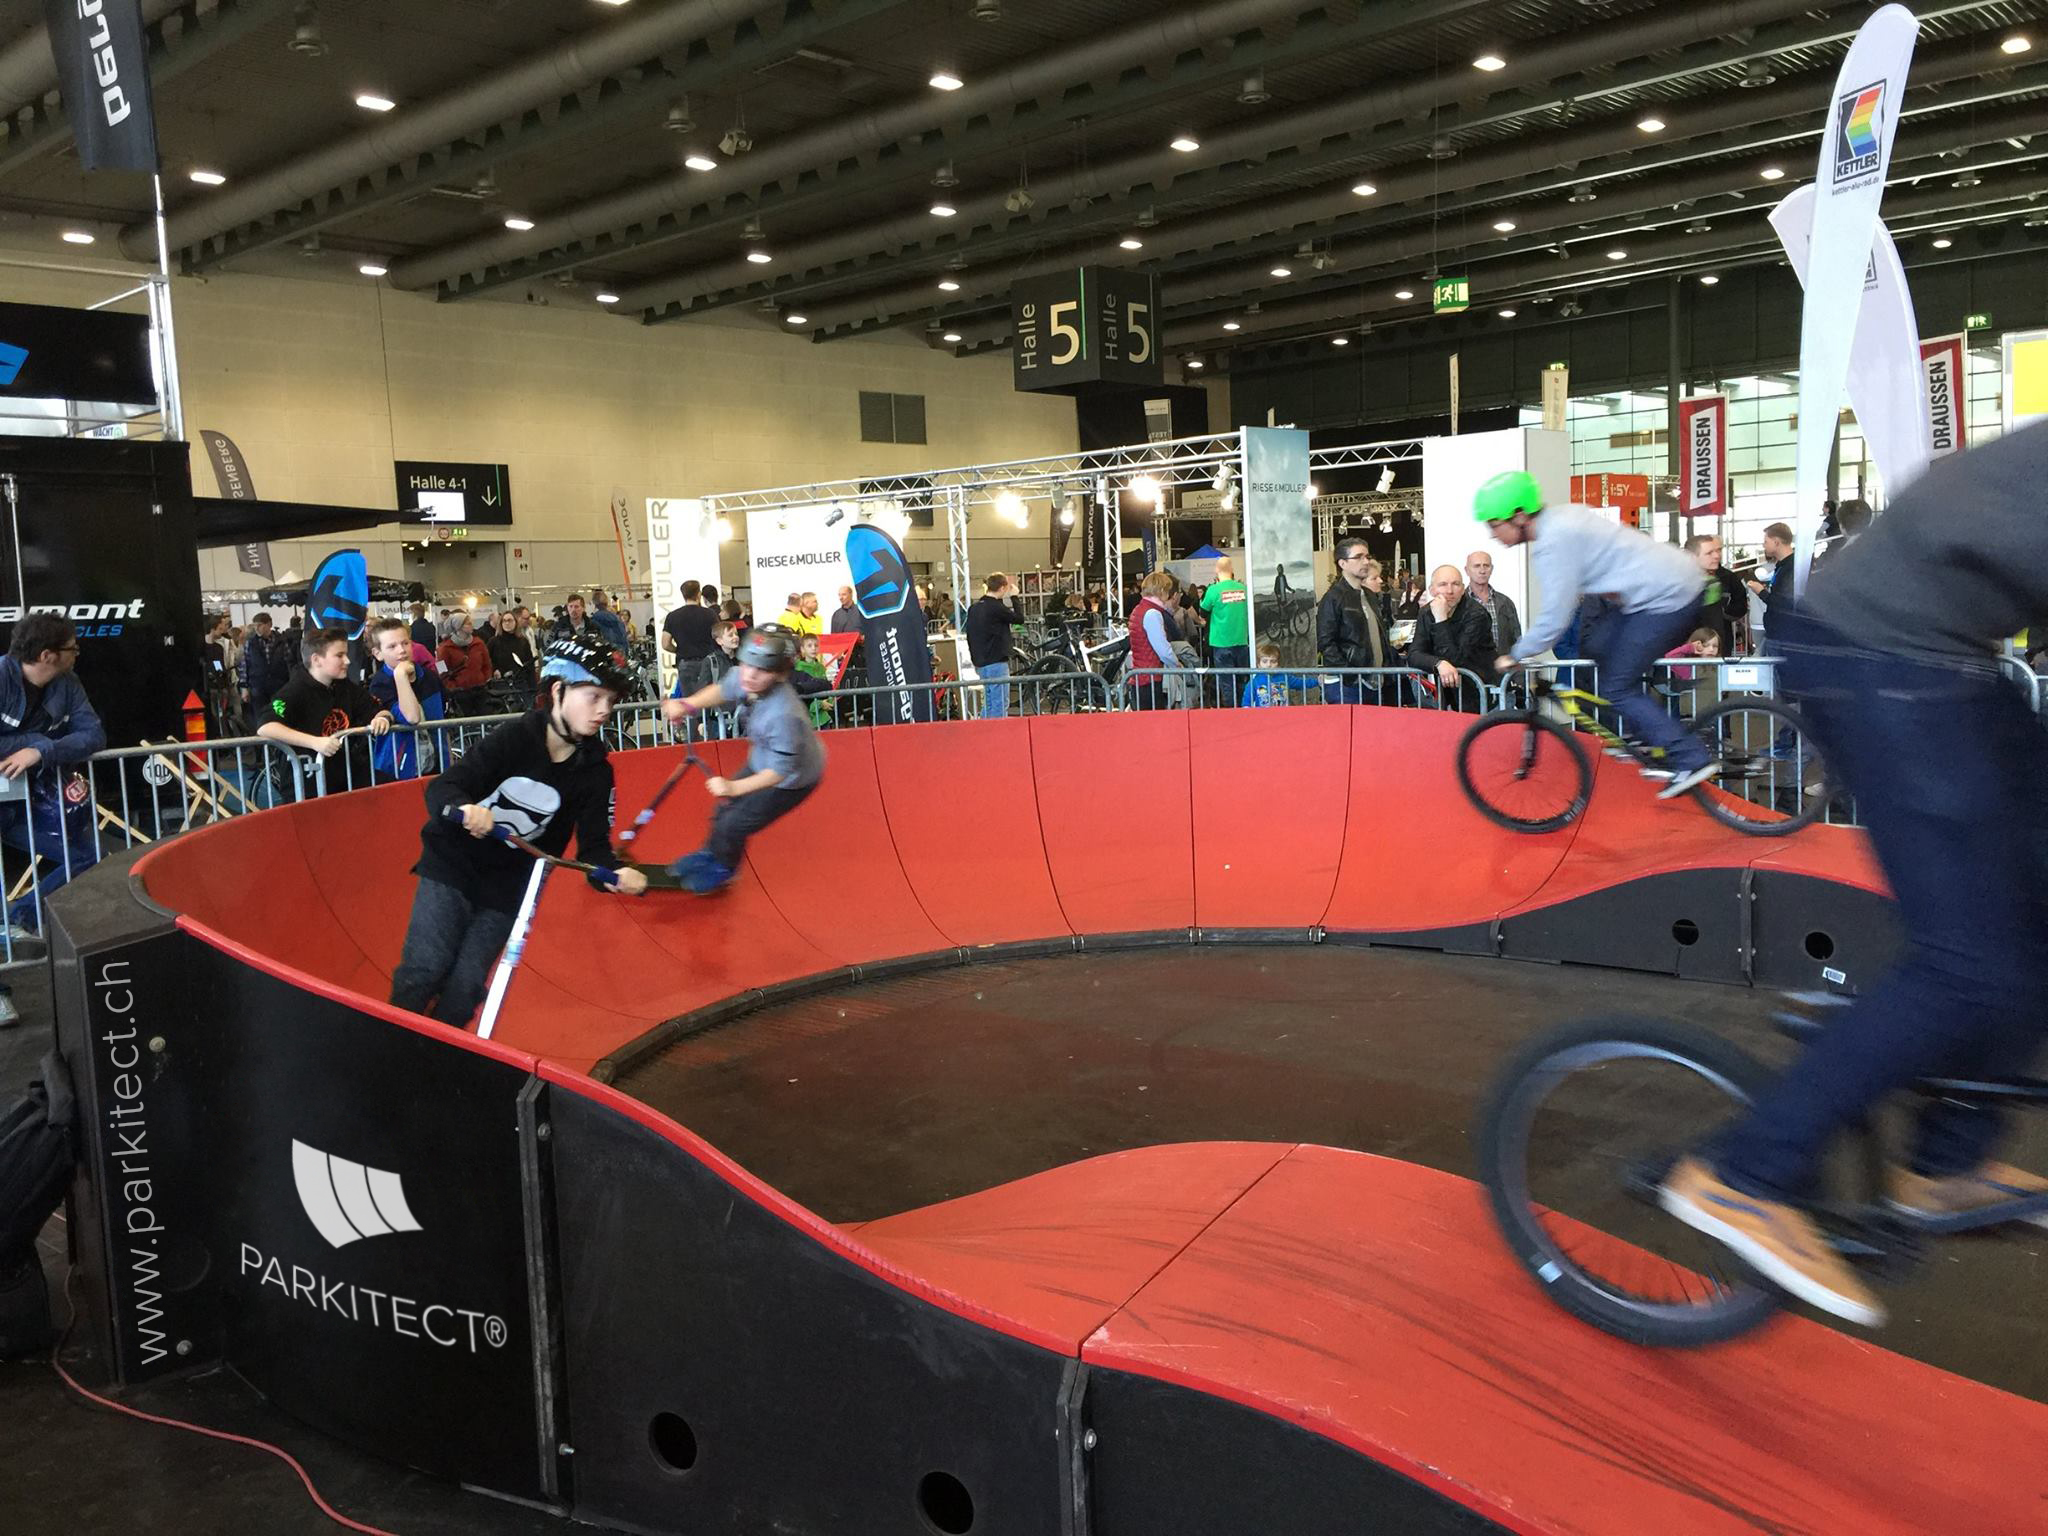 PARKITECT modular pumptrack made of composite material featured at an outdoor show in Bremen, Germany.-1